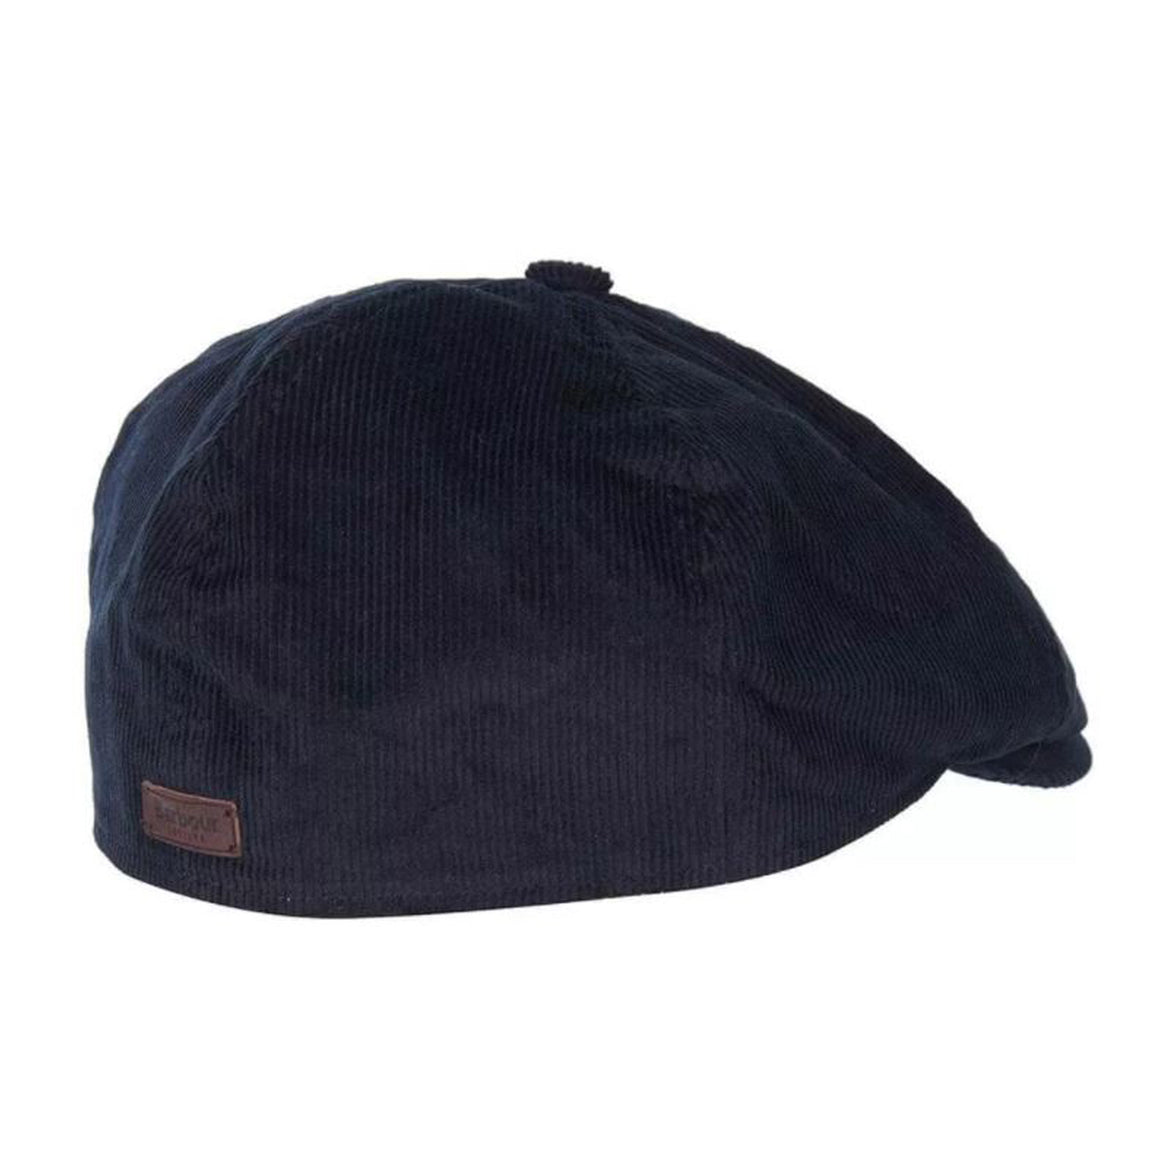 Nelson Bakerboy for Men in Navy